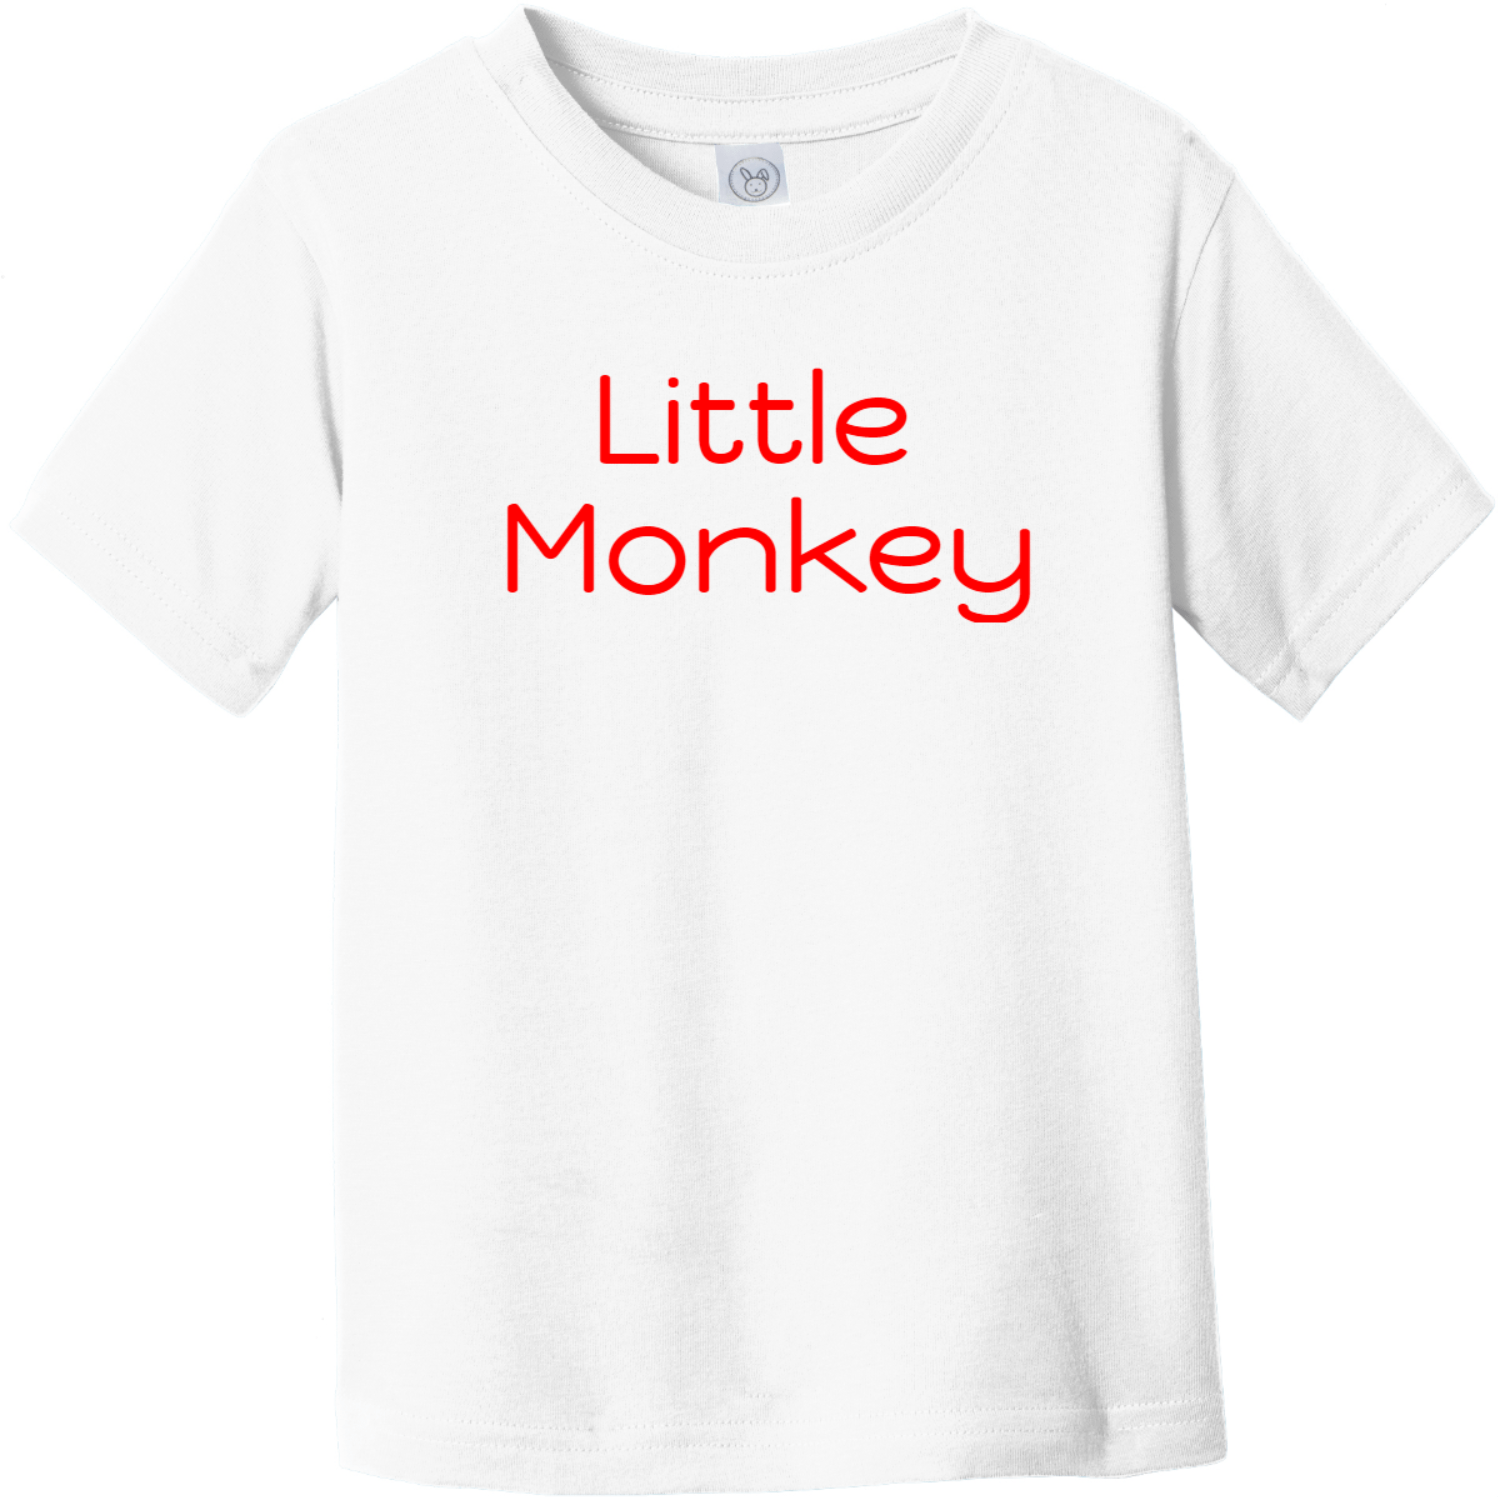 Little Monkey Toddler T-Shirt White Rabbit Skins Toddler Fine Jersey Tee RS3321